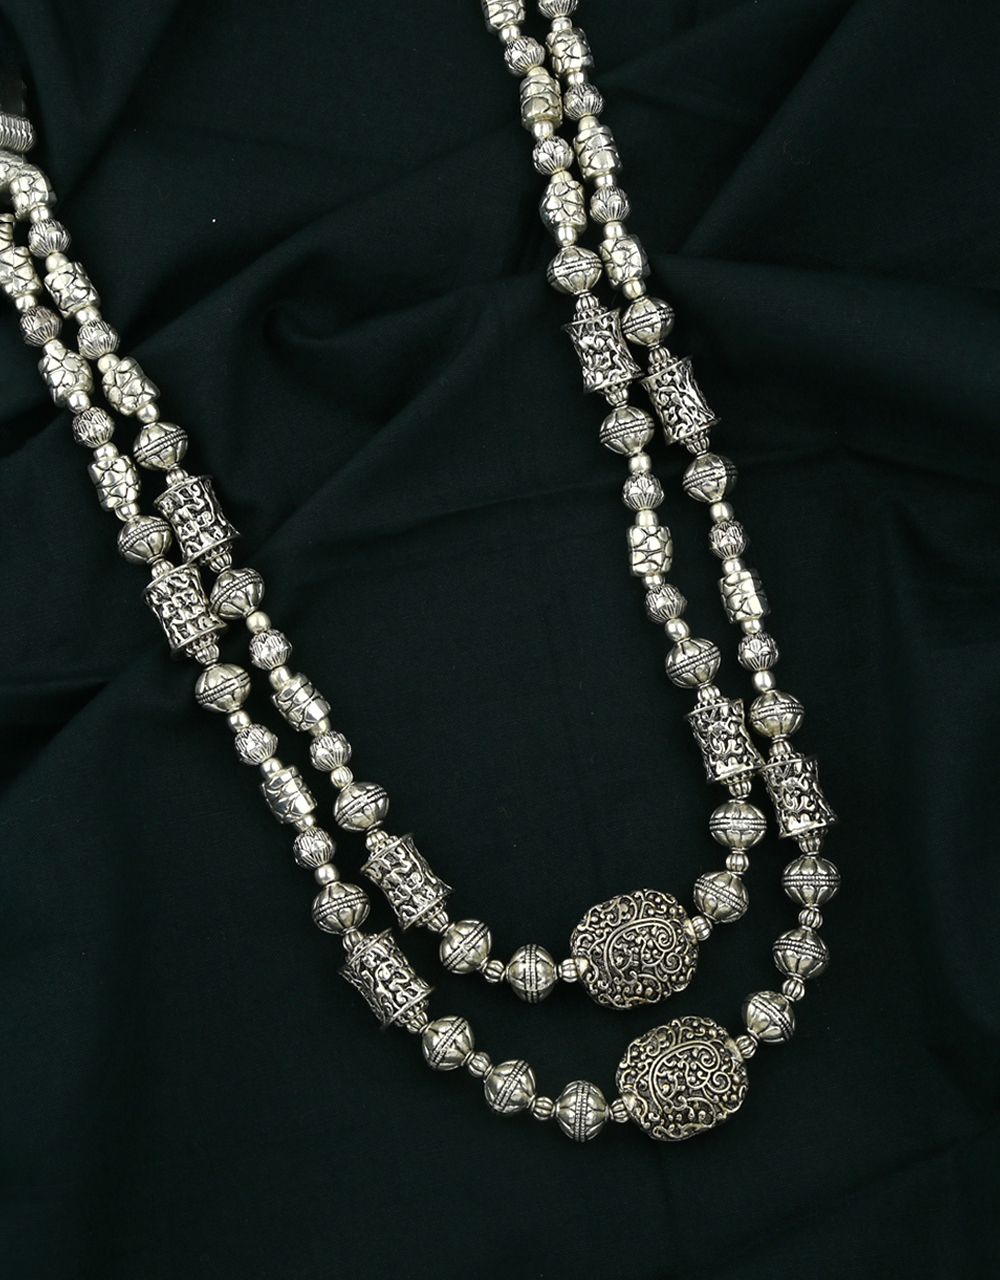 Double Layer Silver Oxidised Finished Adorable Long Necklace for Women